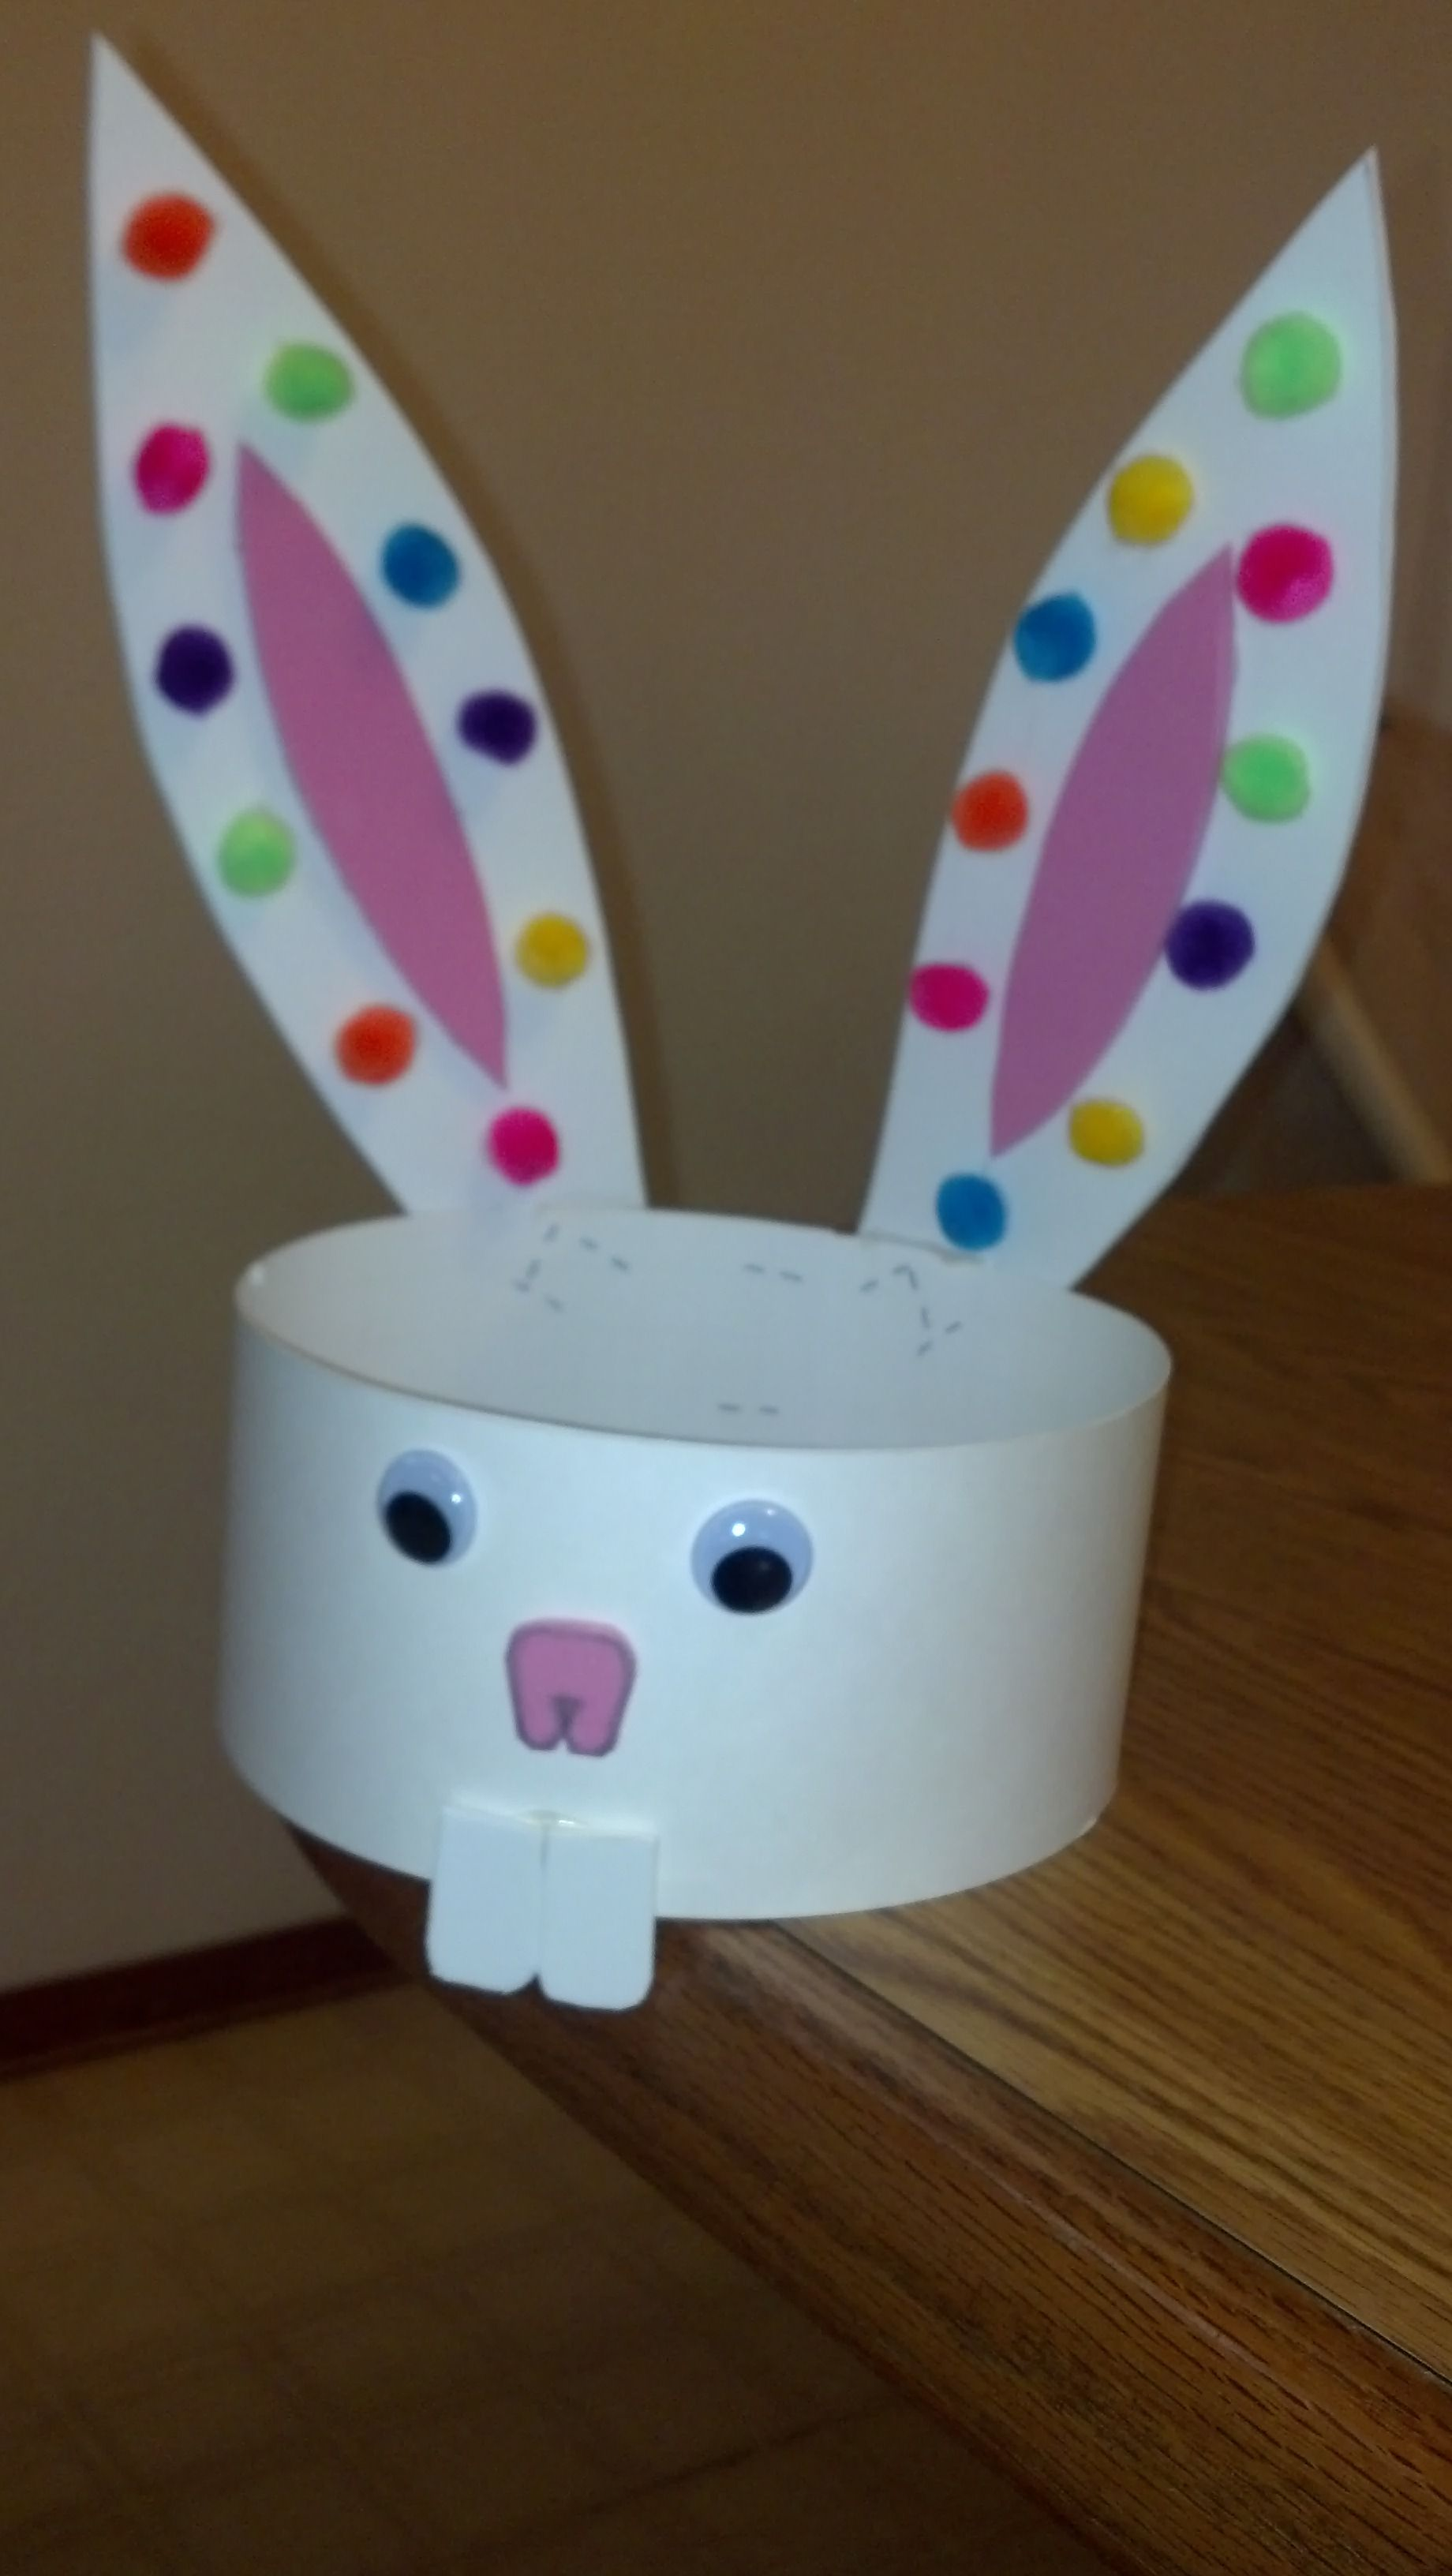 Boys arts and crafts - Easter